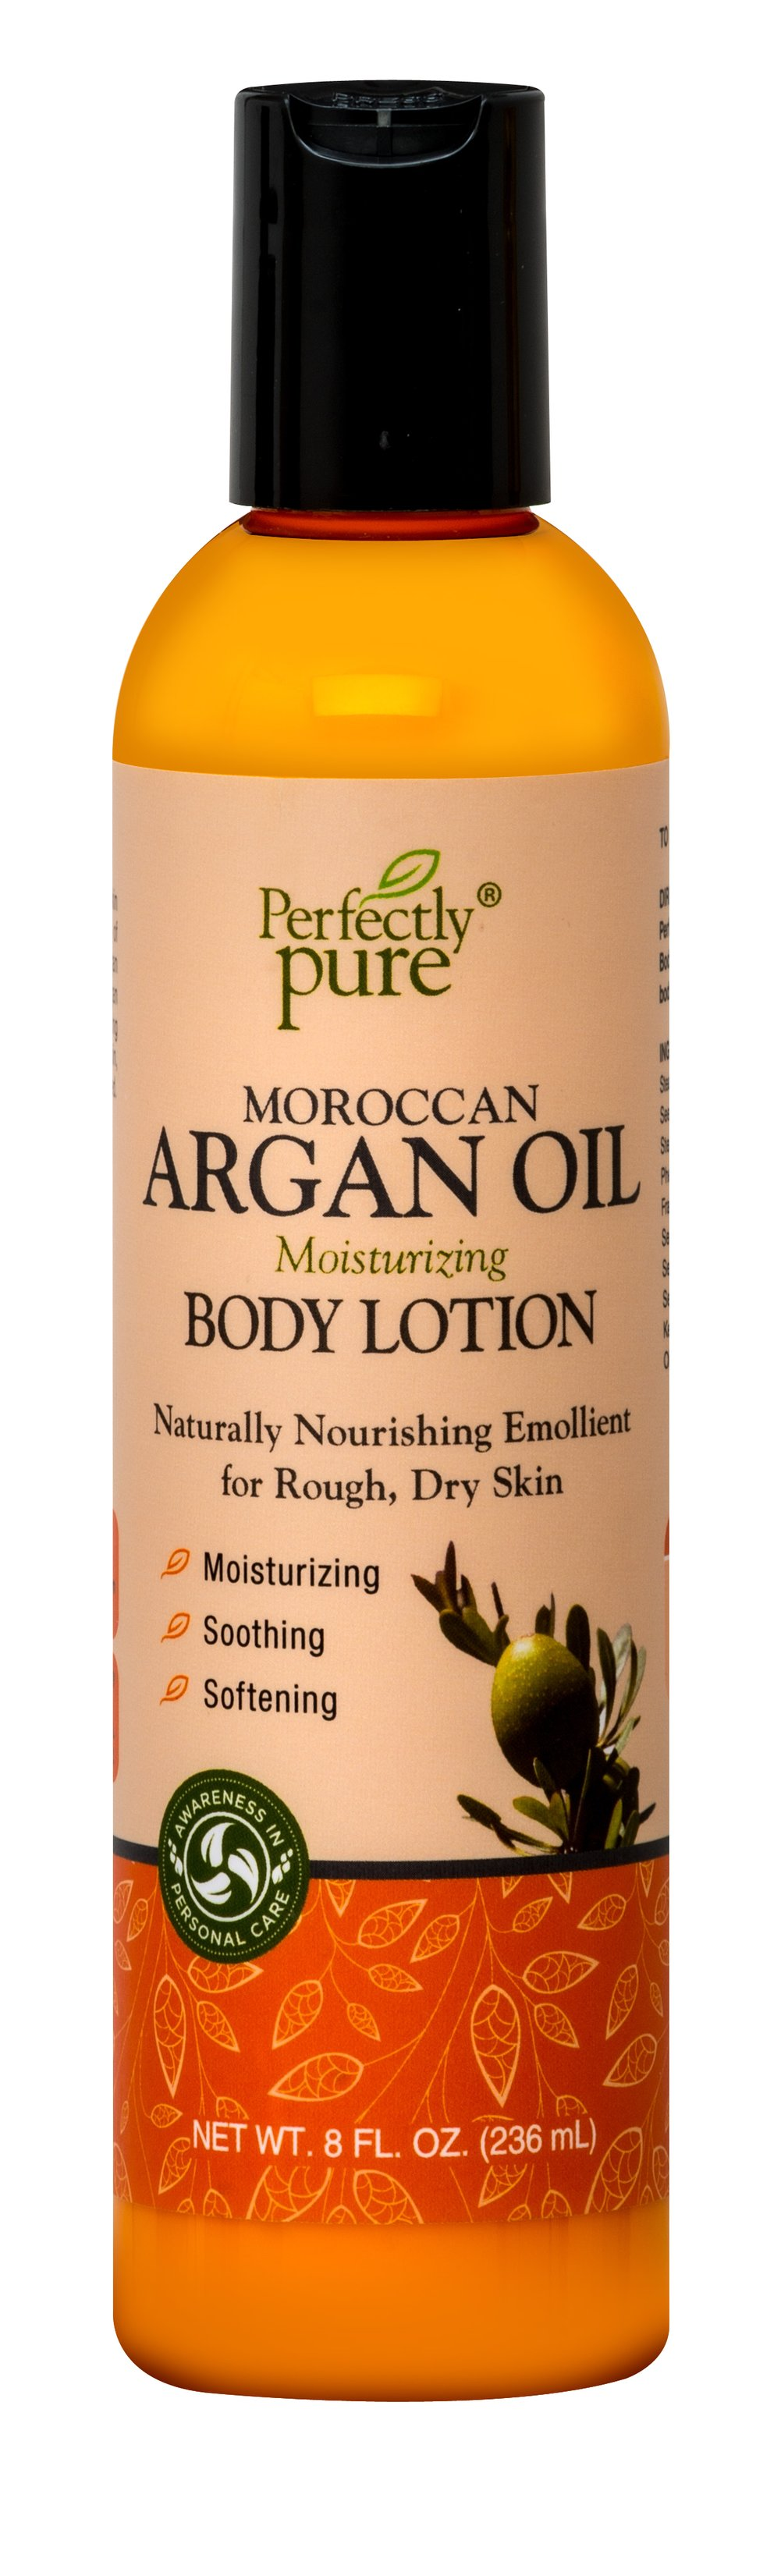 Perfectly Pure Moroccan Argan Oil Body Lotion-8 oz Lotion 051650